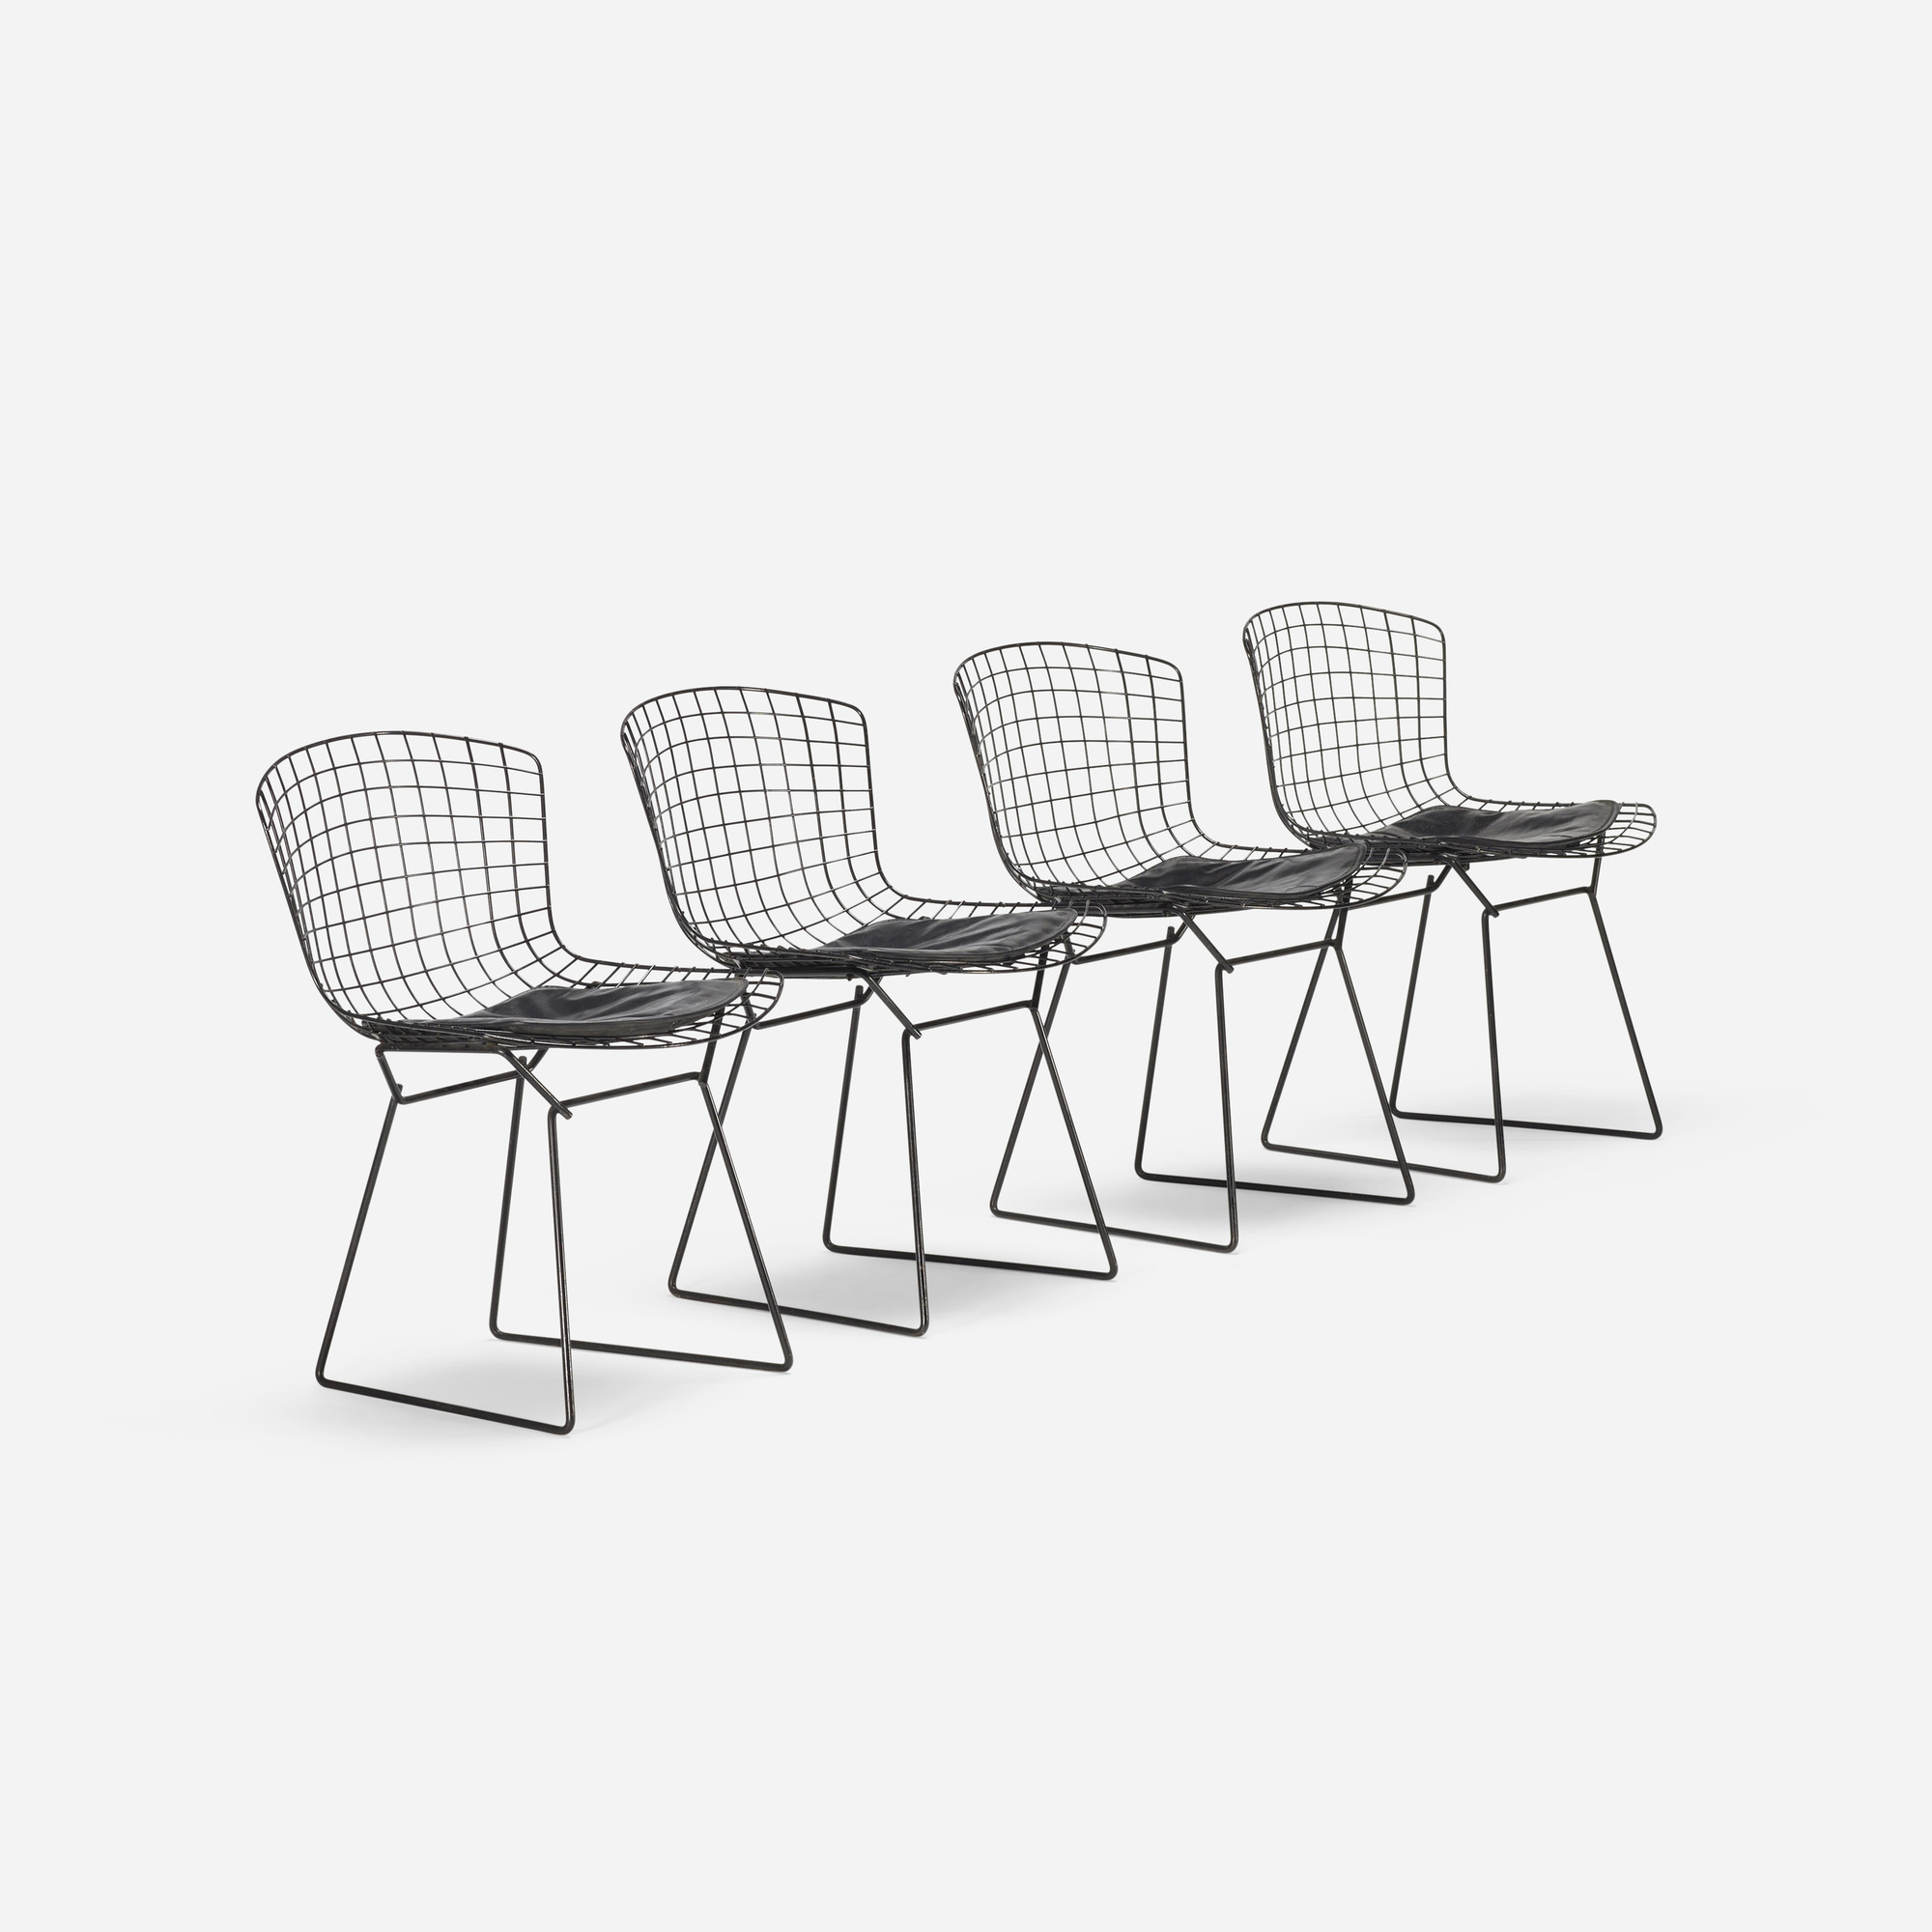 170: Harry Bertoia / dining chairs, set of four (1 of 3)